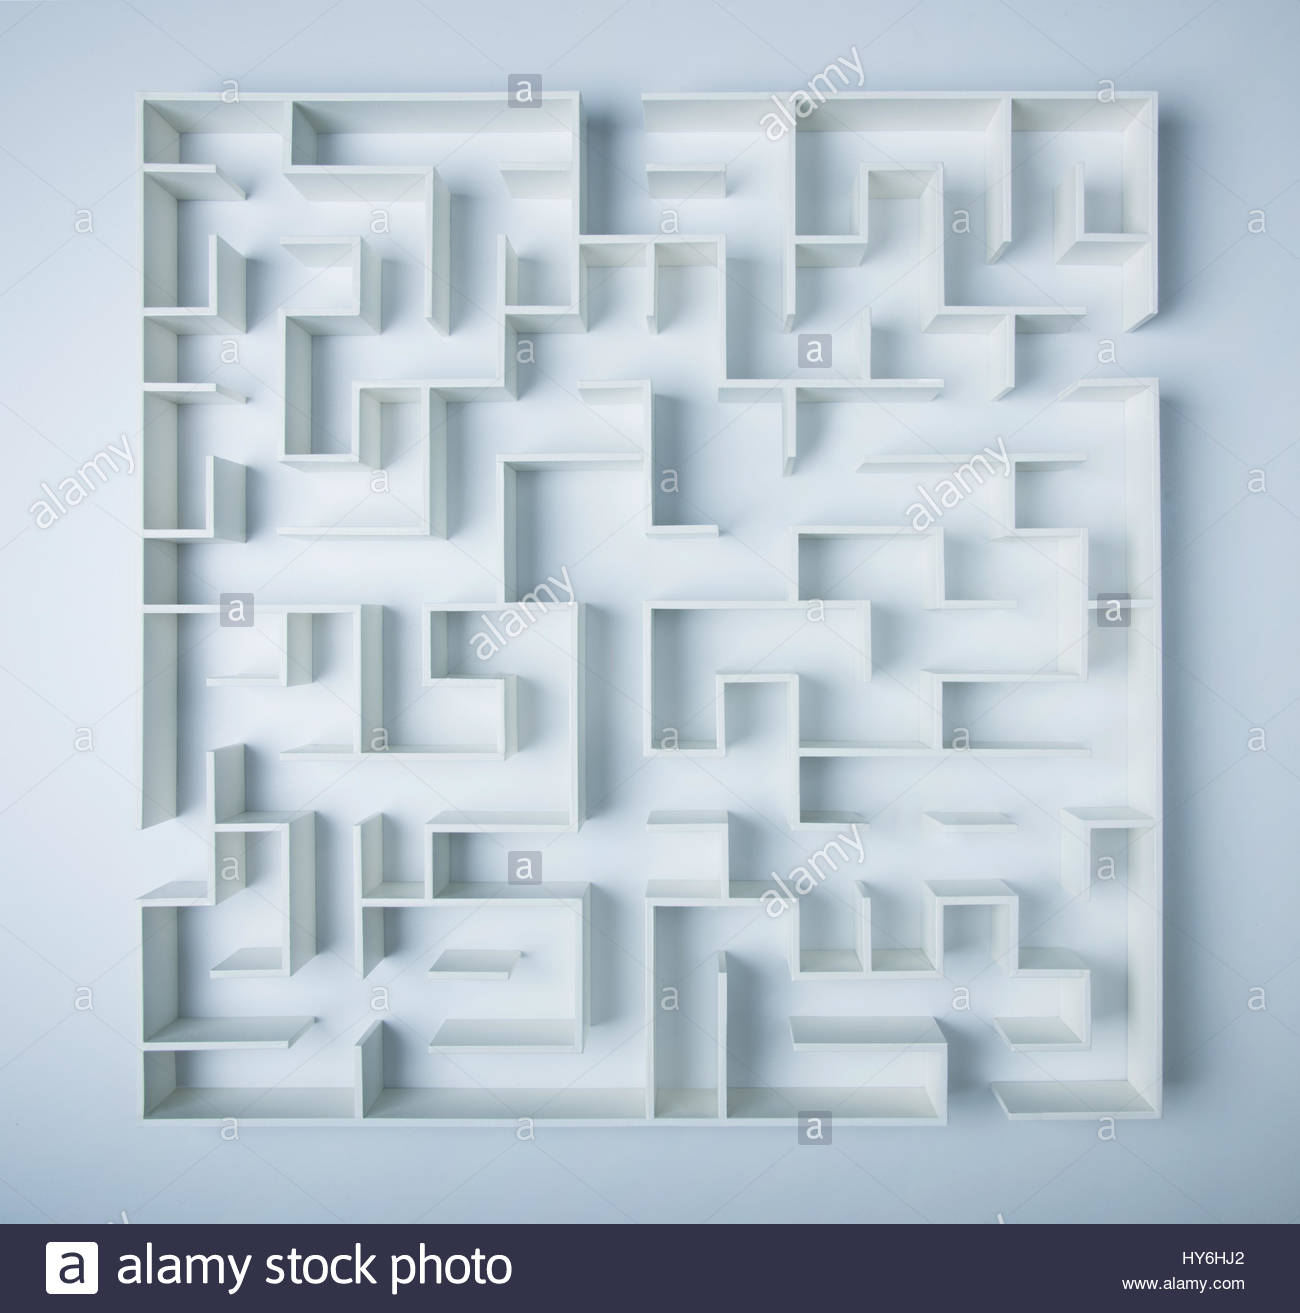 Maze on white background concept for decision-making - Stock Image